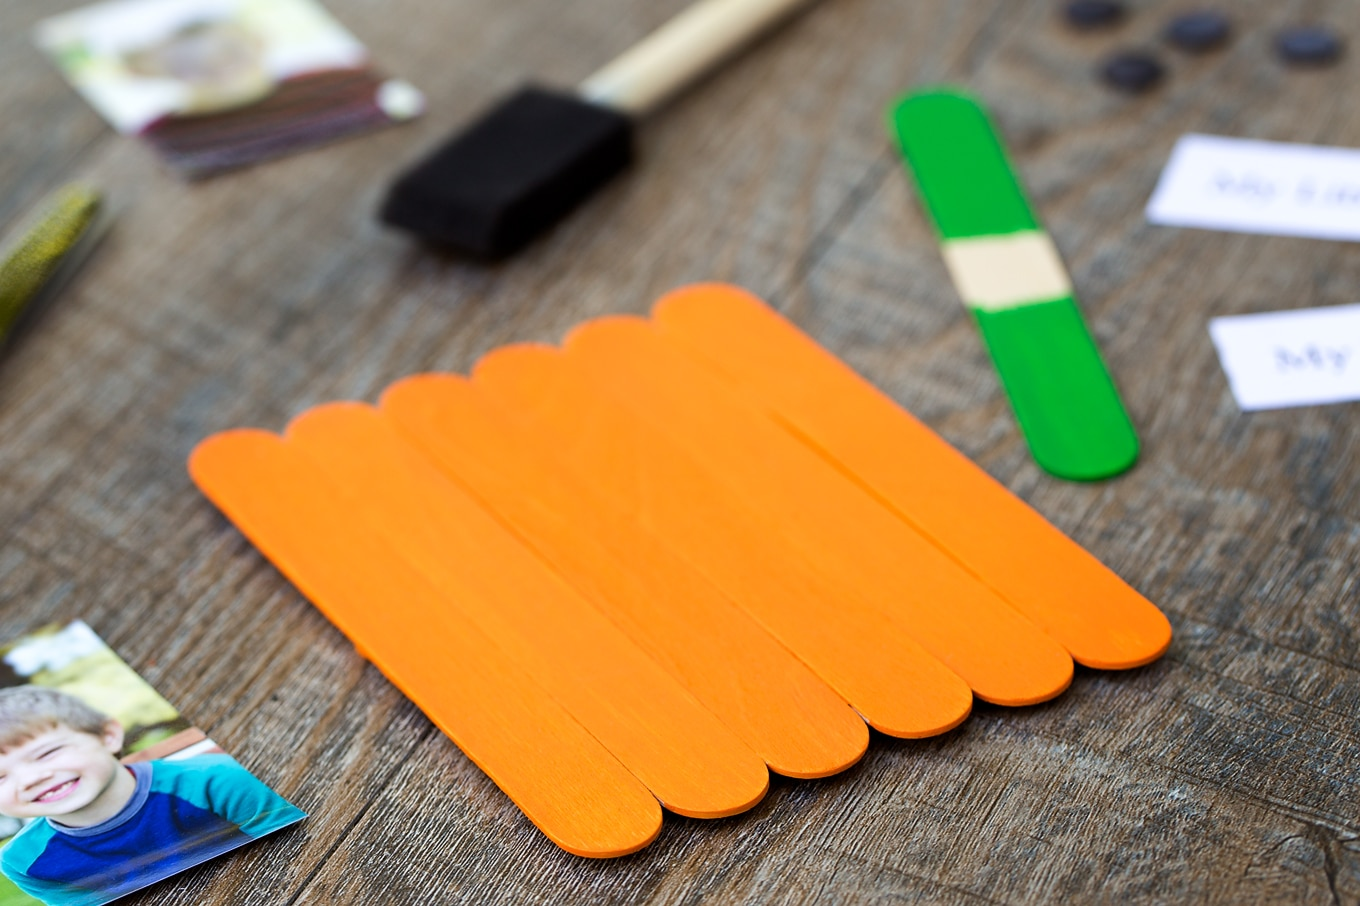 Painting the popsicle stick pumpkin craft